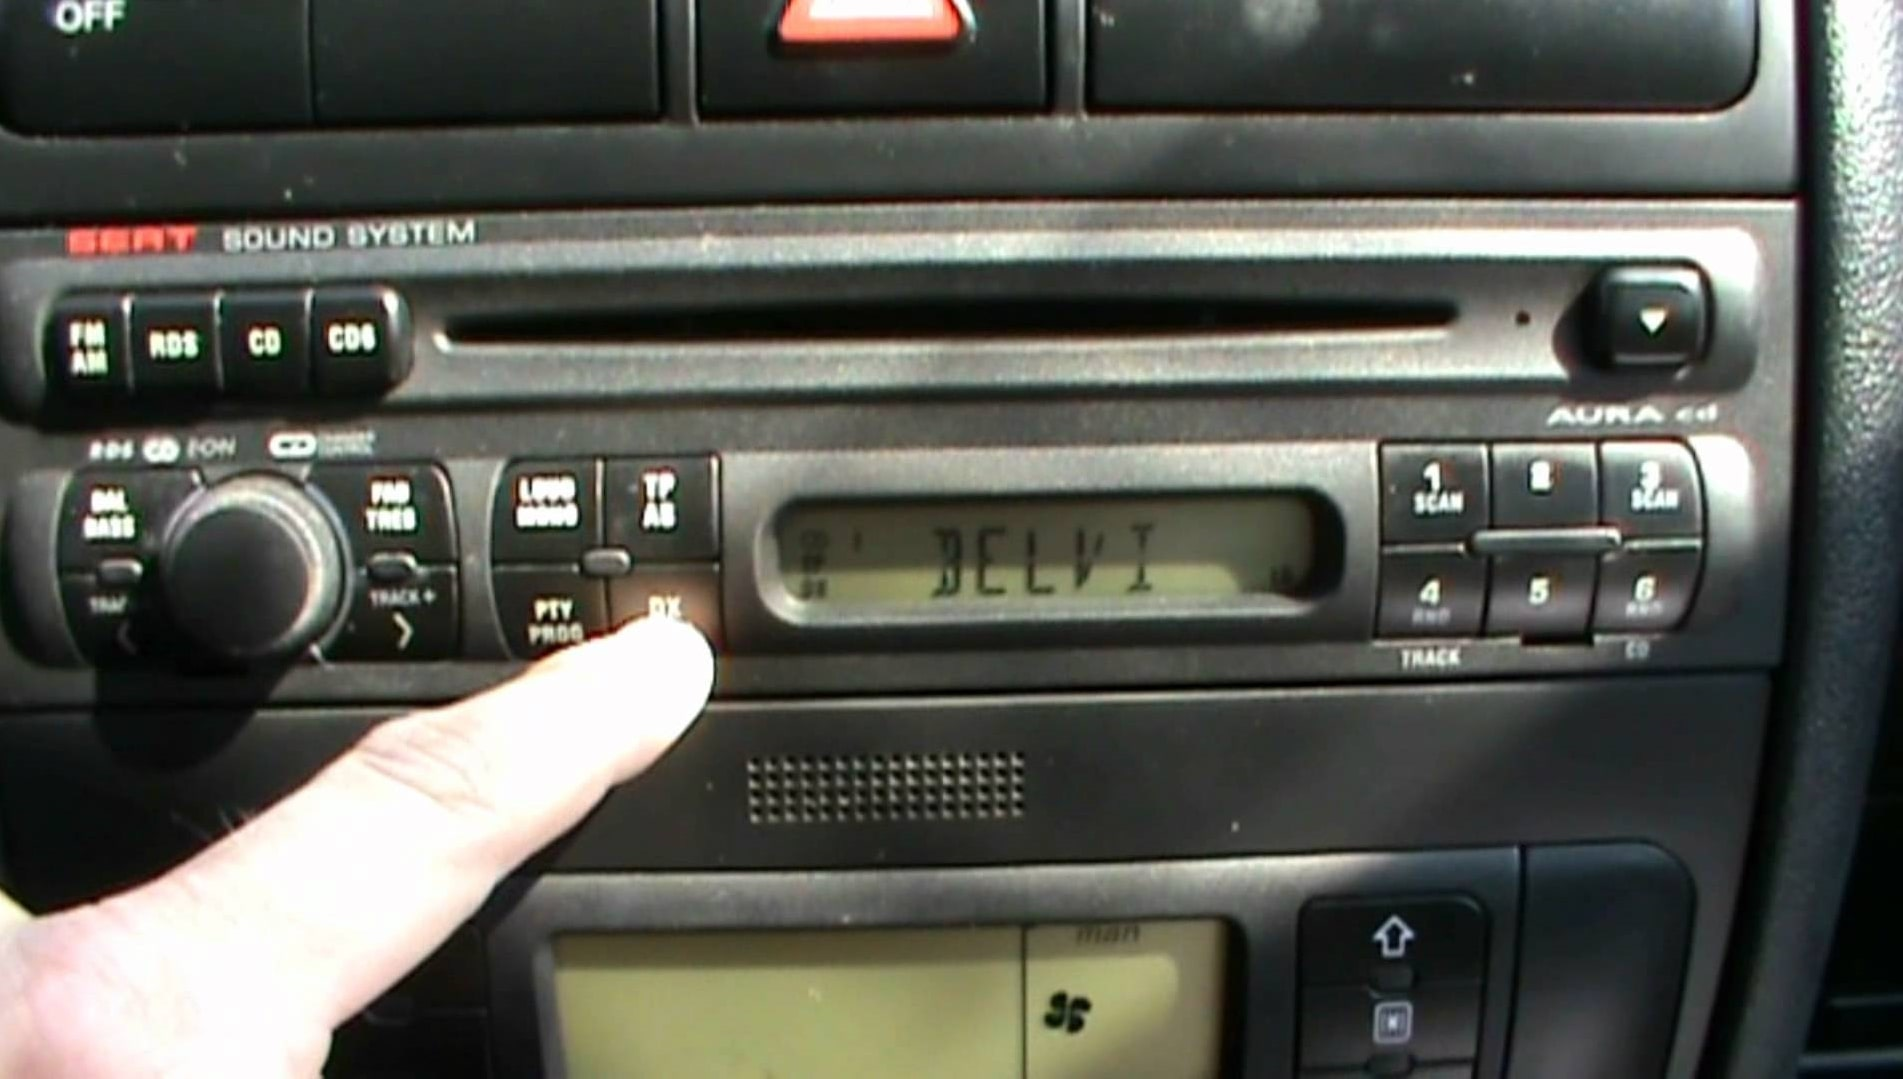 Seat Aura Oem car radio stereo CD player Head Unit With Code Rds Cd Changer Cont